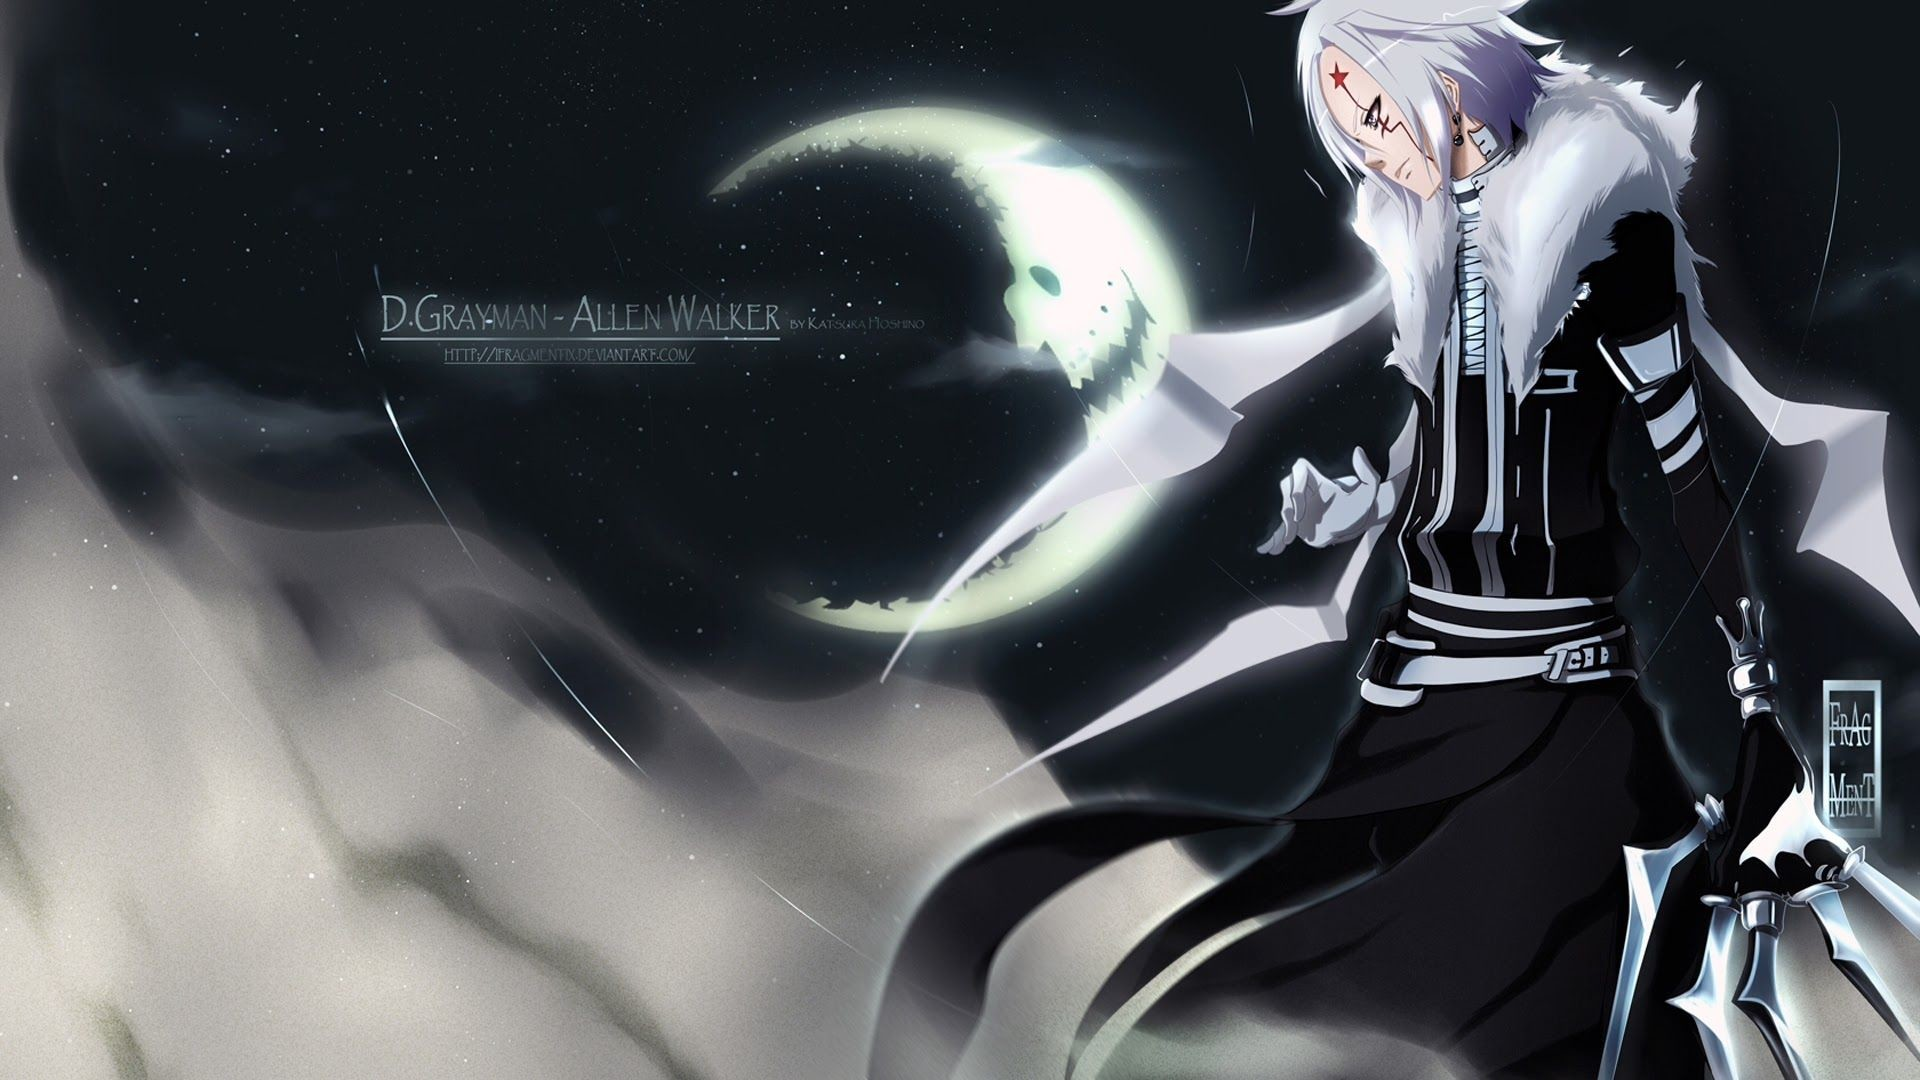 1920x1080 D Gray Man Wallpapers | HD Wallpapers | Pinterest | Hd wallpaper and .